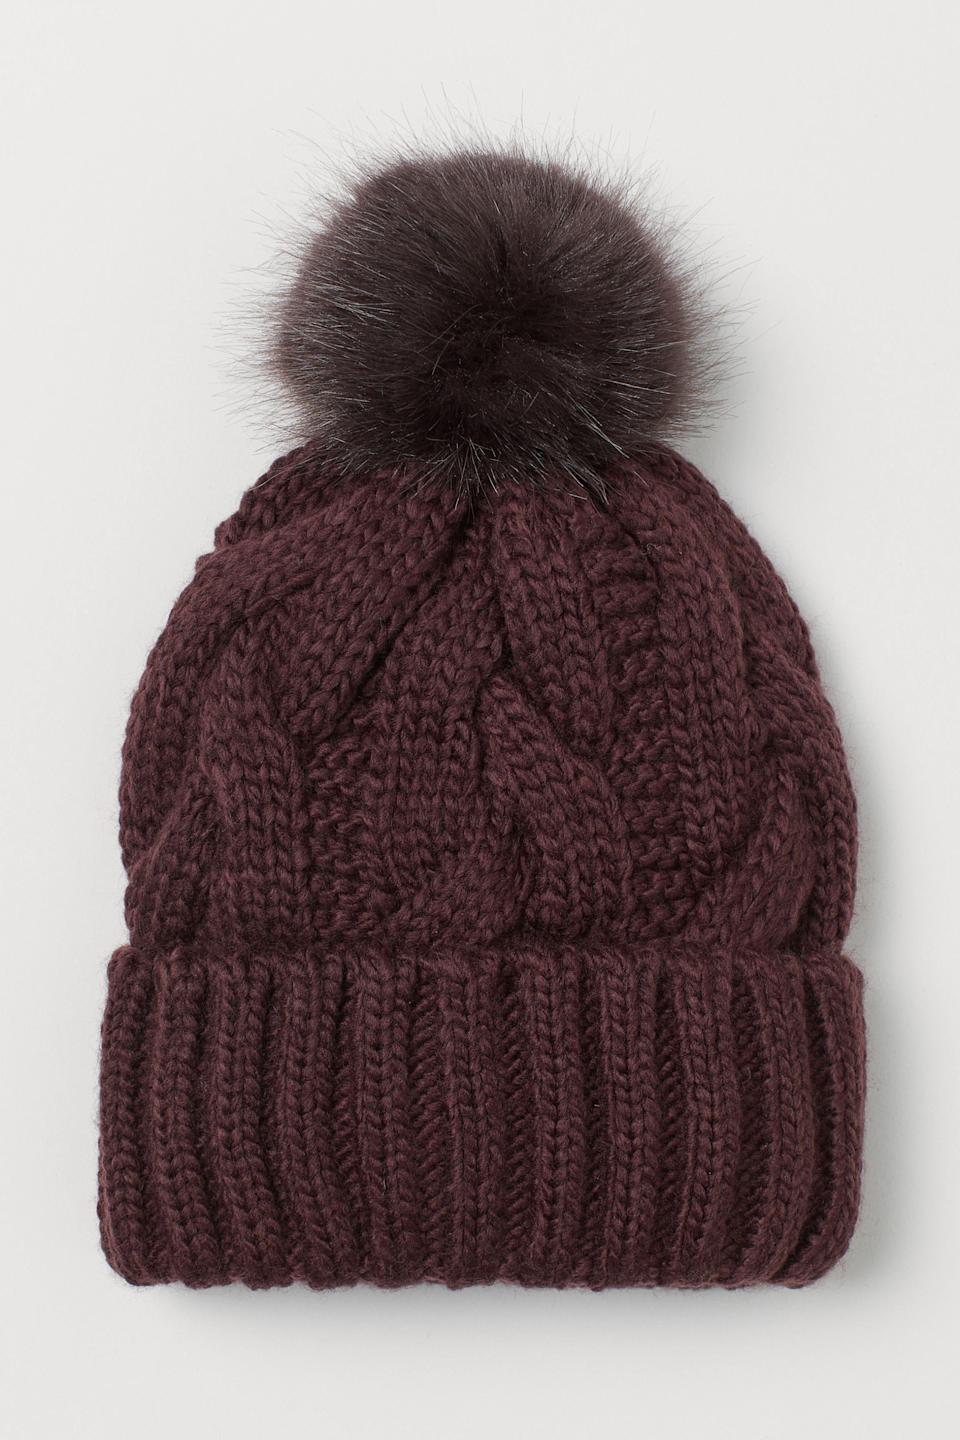 """<p><strong>H&M</strong></p><p>hm.com</p><p><strong>$12.99</strong></p><p><a href=""""https://go.redirectingat.com?id=74968X1596630&url=https%3A%2F%2Fwww2.hm.com%2Fen_us%2Fproductpage.0756099021.html&sref=https%3A%2F%2Fwww.countryliving.com%2Fshopping%2Fg37003543%2Ffall-hats-women%2F"""" rel=""""nofollow noopener"""" target=""""_blank"""" data-ylk=""""slk:SHOP NOW"""" class=""""link rapid-noclick-resp"""">SHOP NOW</a></p><p>For the days during the fall when the temperature drops, there's nothing like a knit beanie to help keep you warm. Shown here in dark plum purple, this knit hat is also offered in beige, white, and black. </p>"""